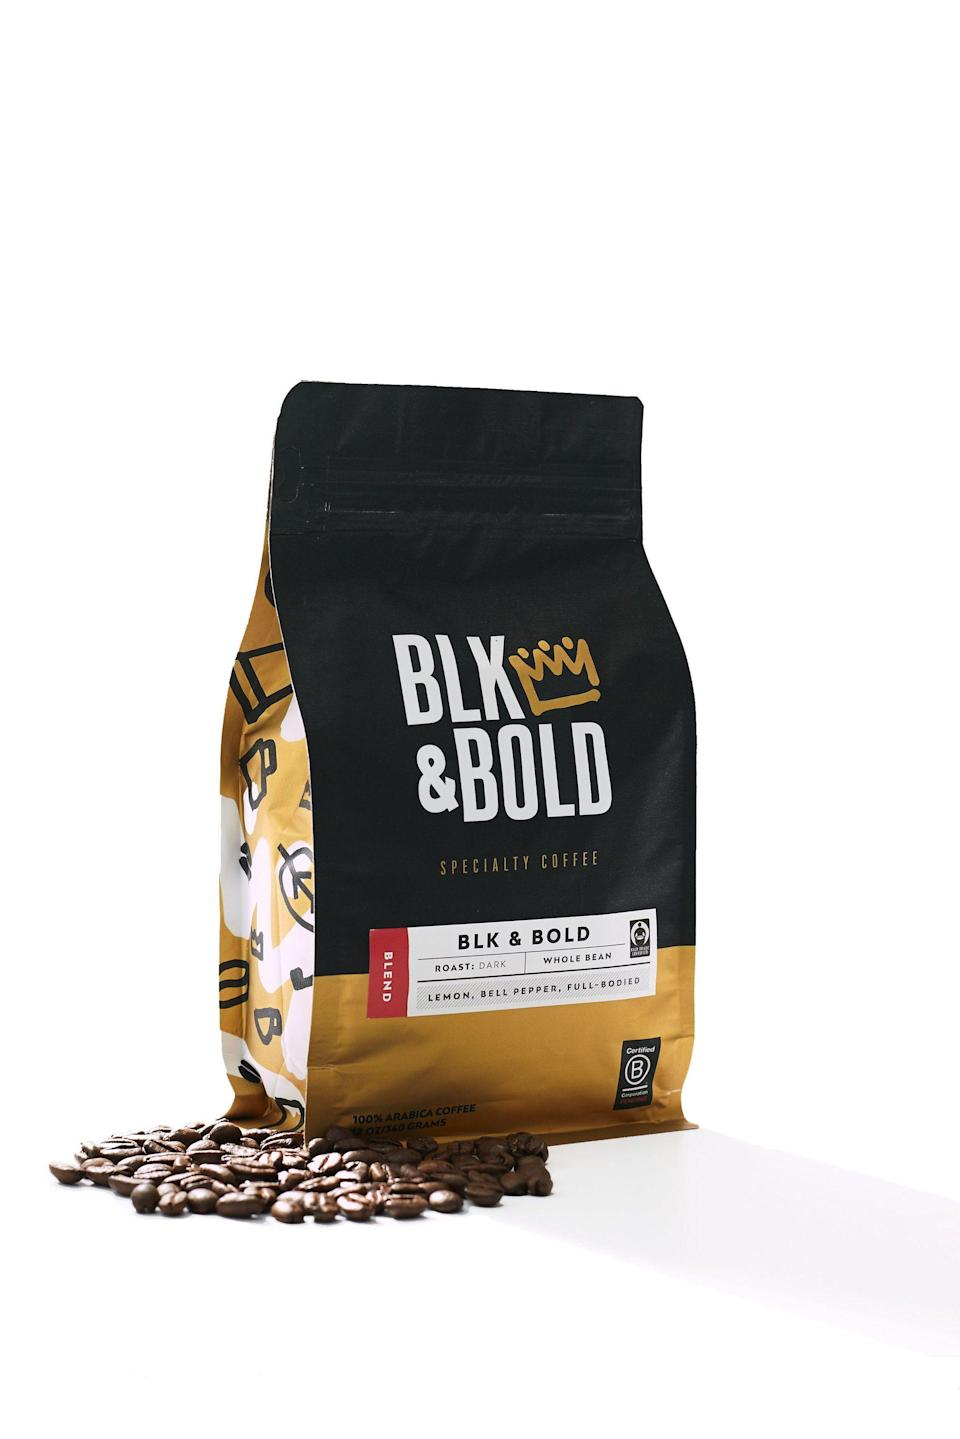 """<p>blkandbold.com</p><p><strong>$14.00</strong></p><p><a href=""""https://blkandbold.com/collections/fair-trade-specialty-coffees/products/blk-bold-sumatra-blend"""" rel=""""nofollow noopener"""" target=""""_blank"""" data-ylk=""""slk:Shop Now"""" class=""""link rapid-noclick-resp"""">Shop Now</a></p><p>Give her the gift of flavorful, gourmet, small-batch coffee this year! It's enough to win the heart of any caffeine lover.</p>"""